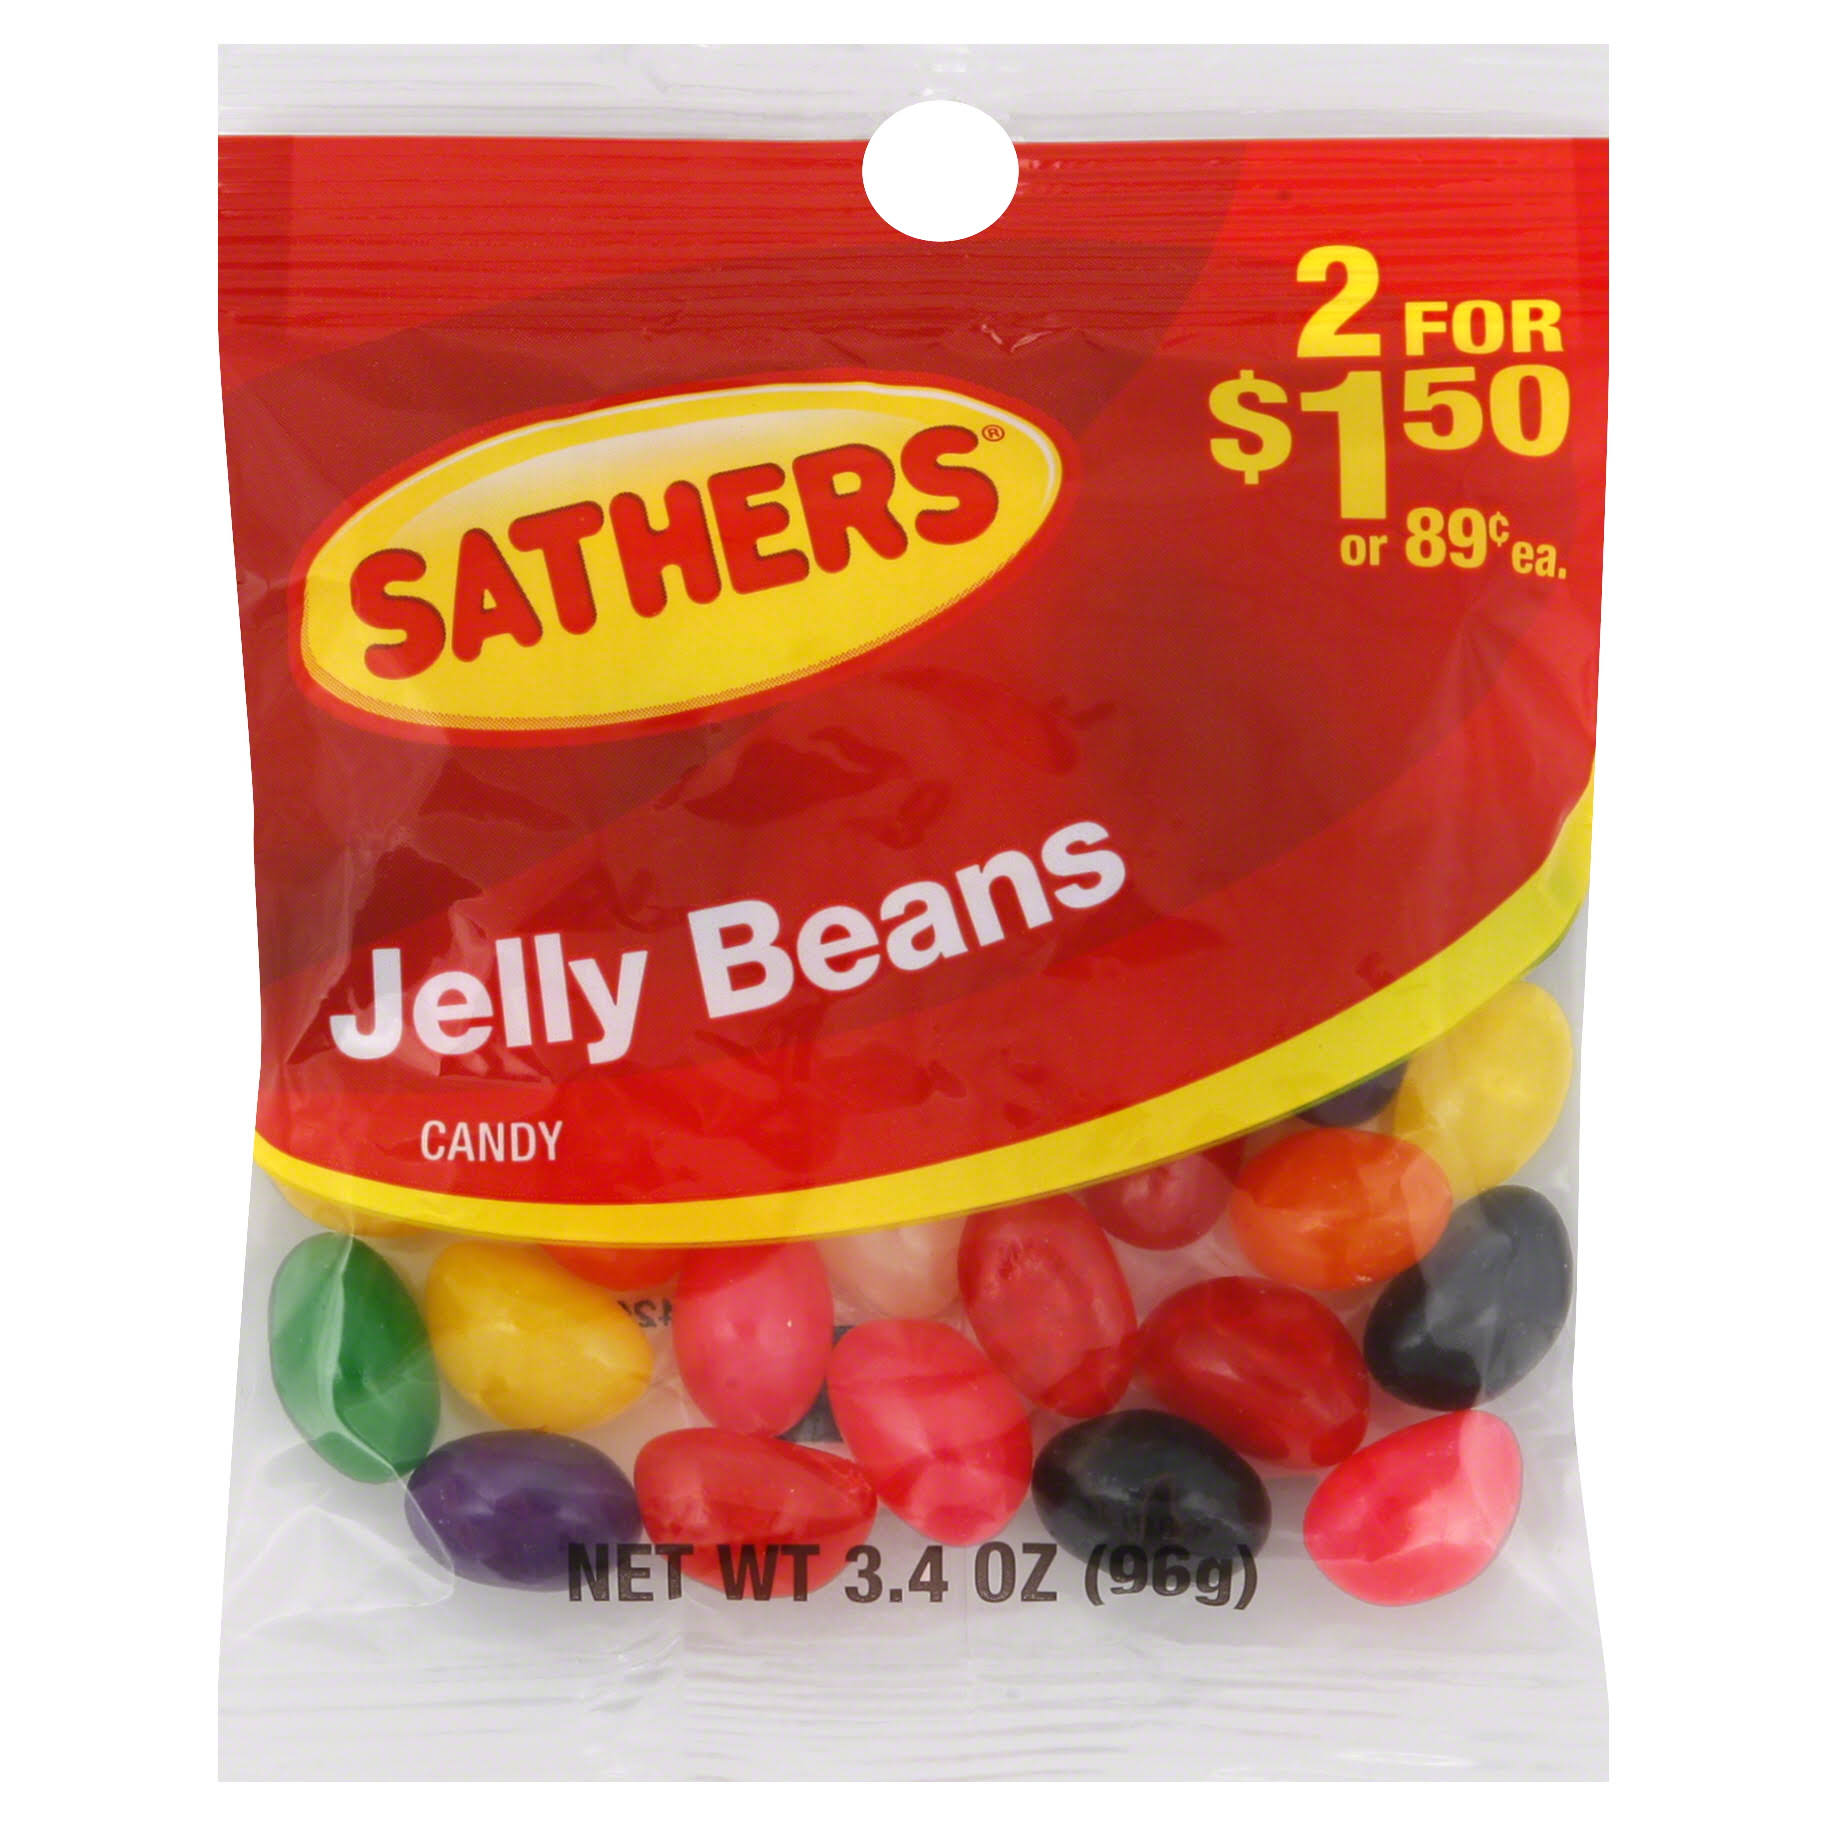 Sathers Jelly Beans Candy - 3.4oz